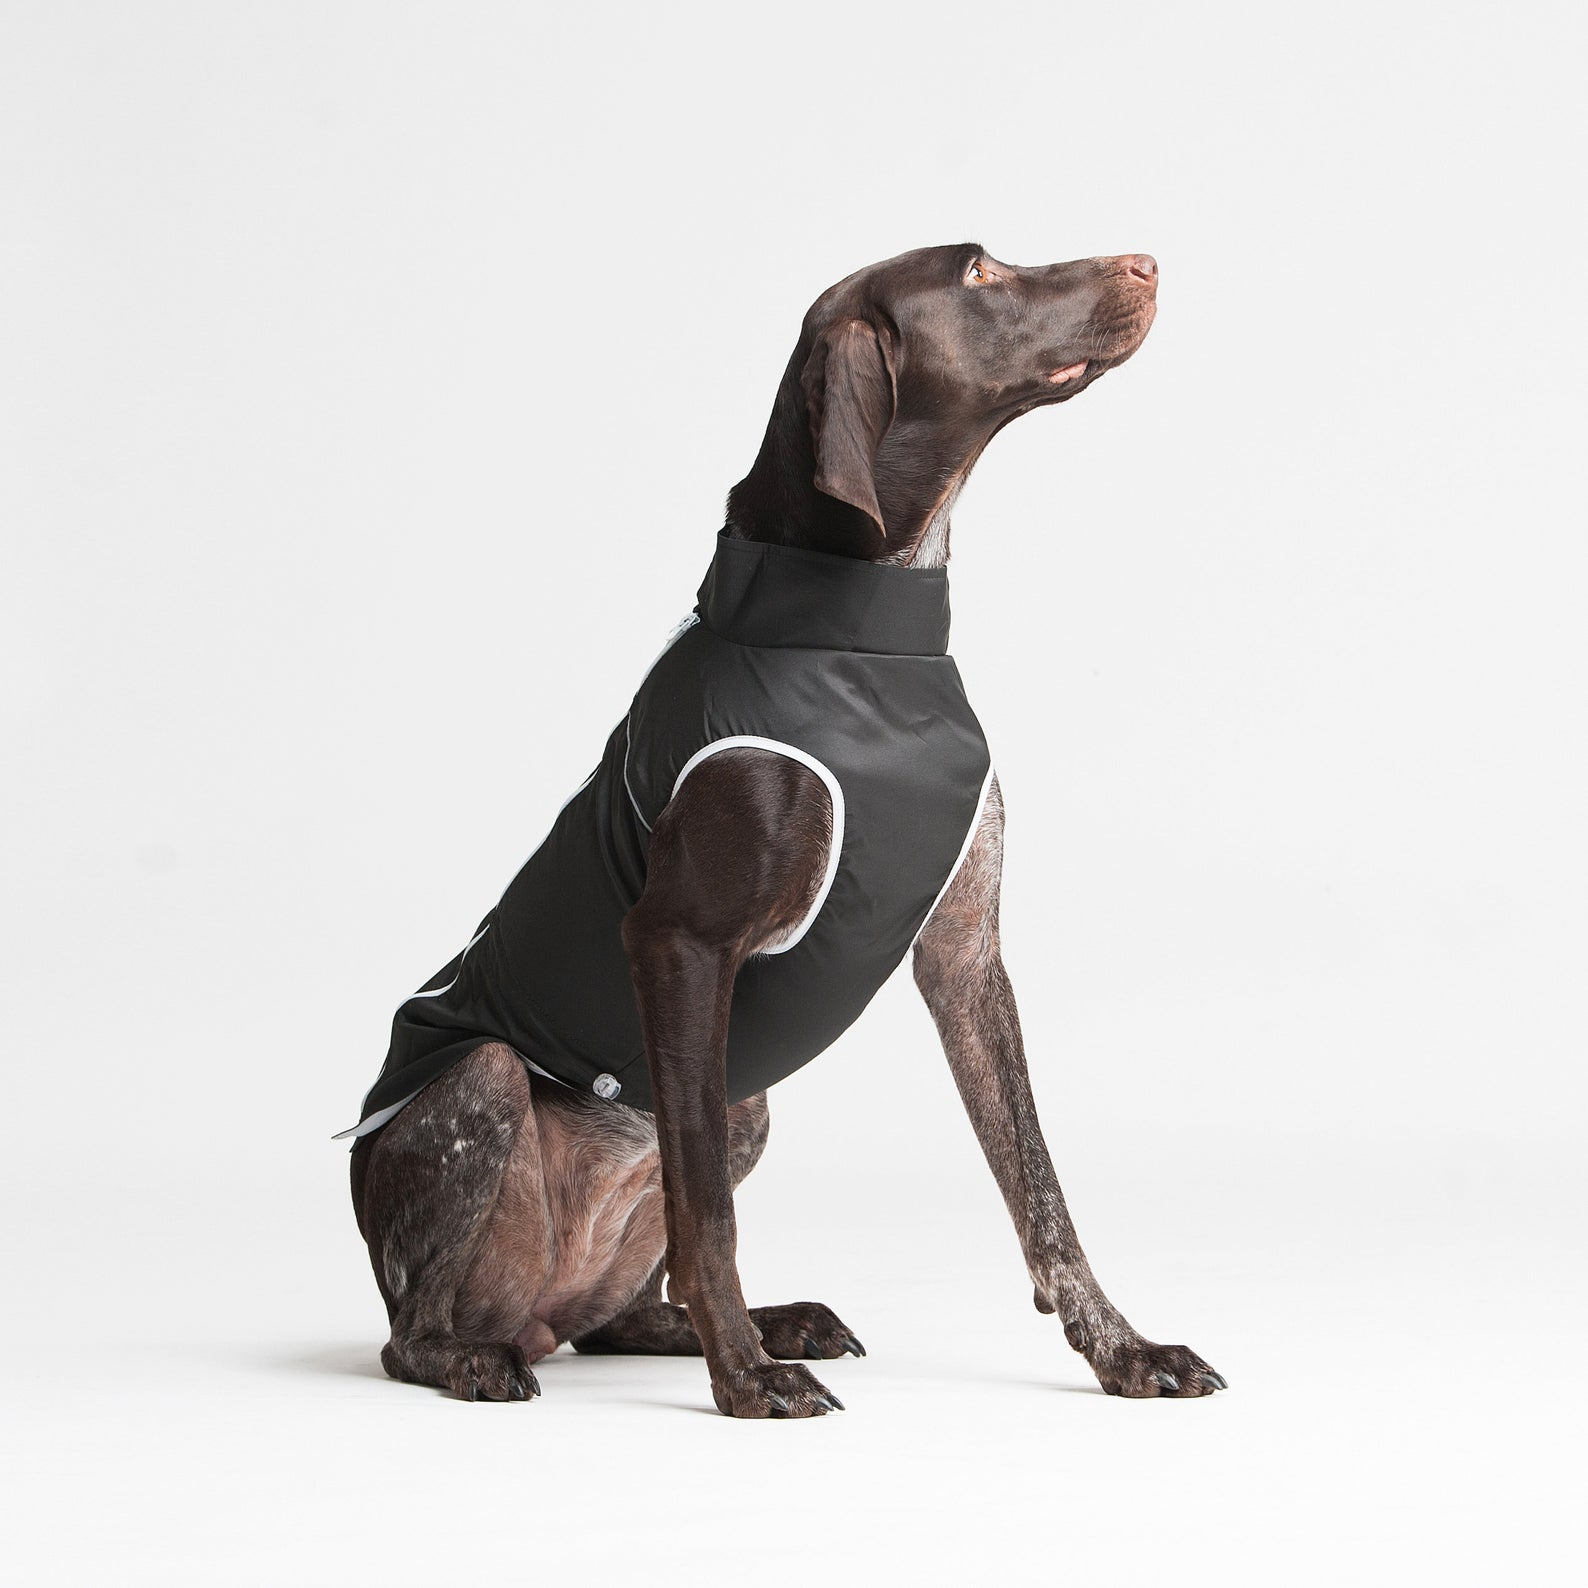 WoofitDogwear Light Rain Jacket for Dogs in Black via Etsy.